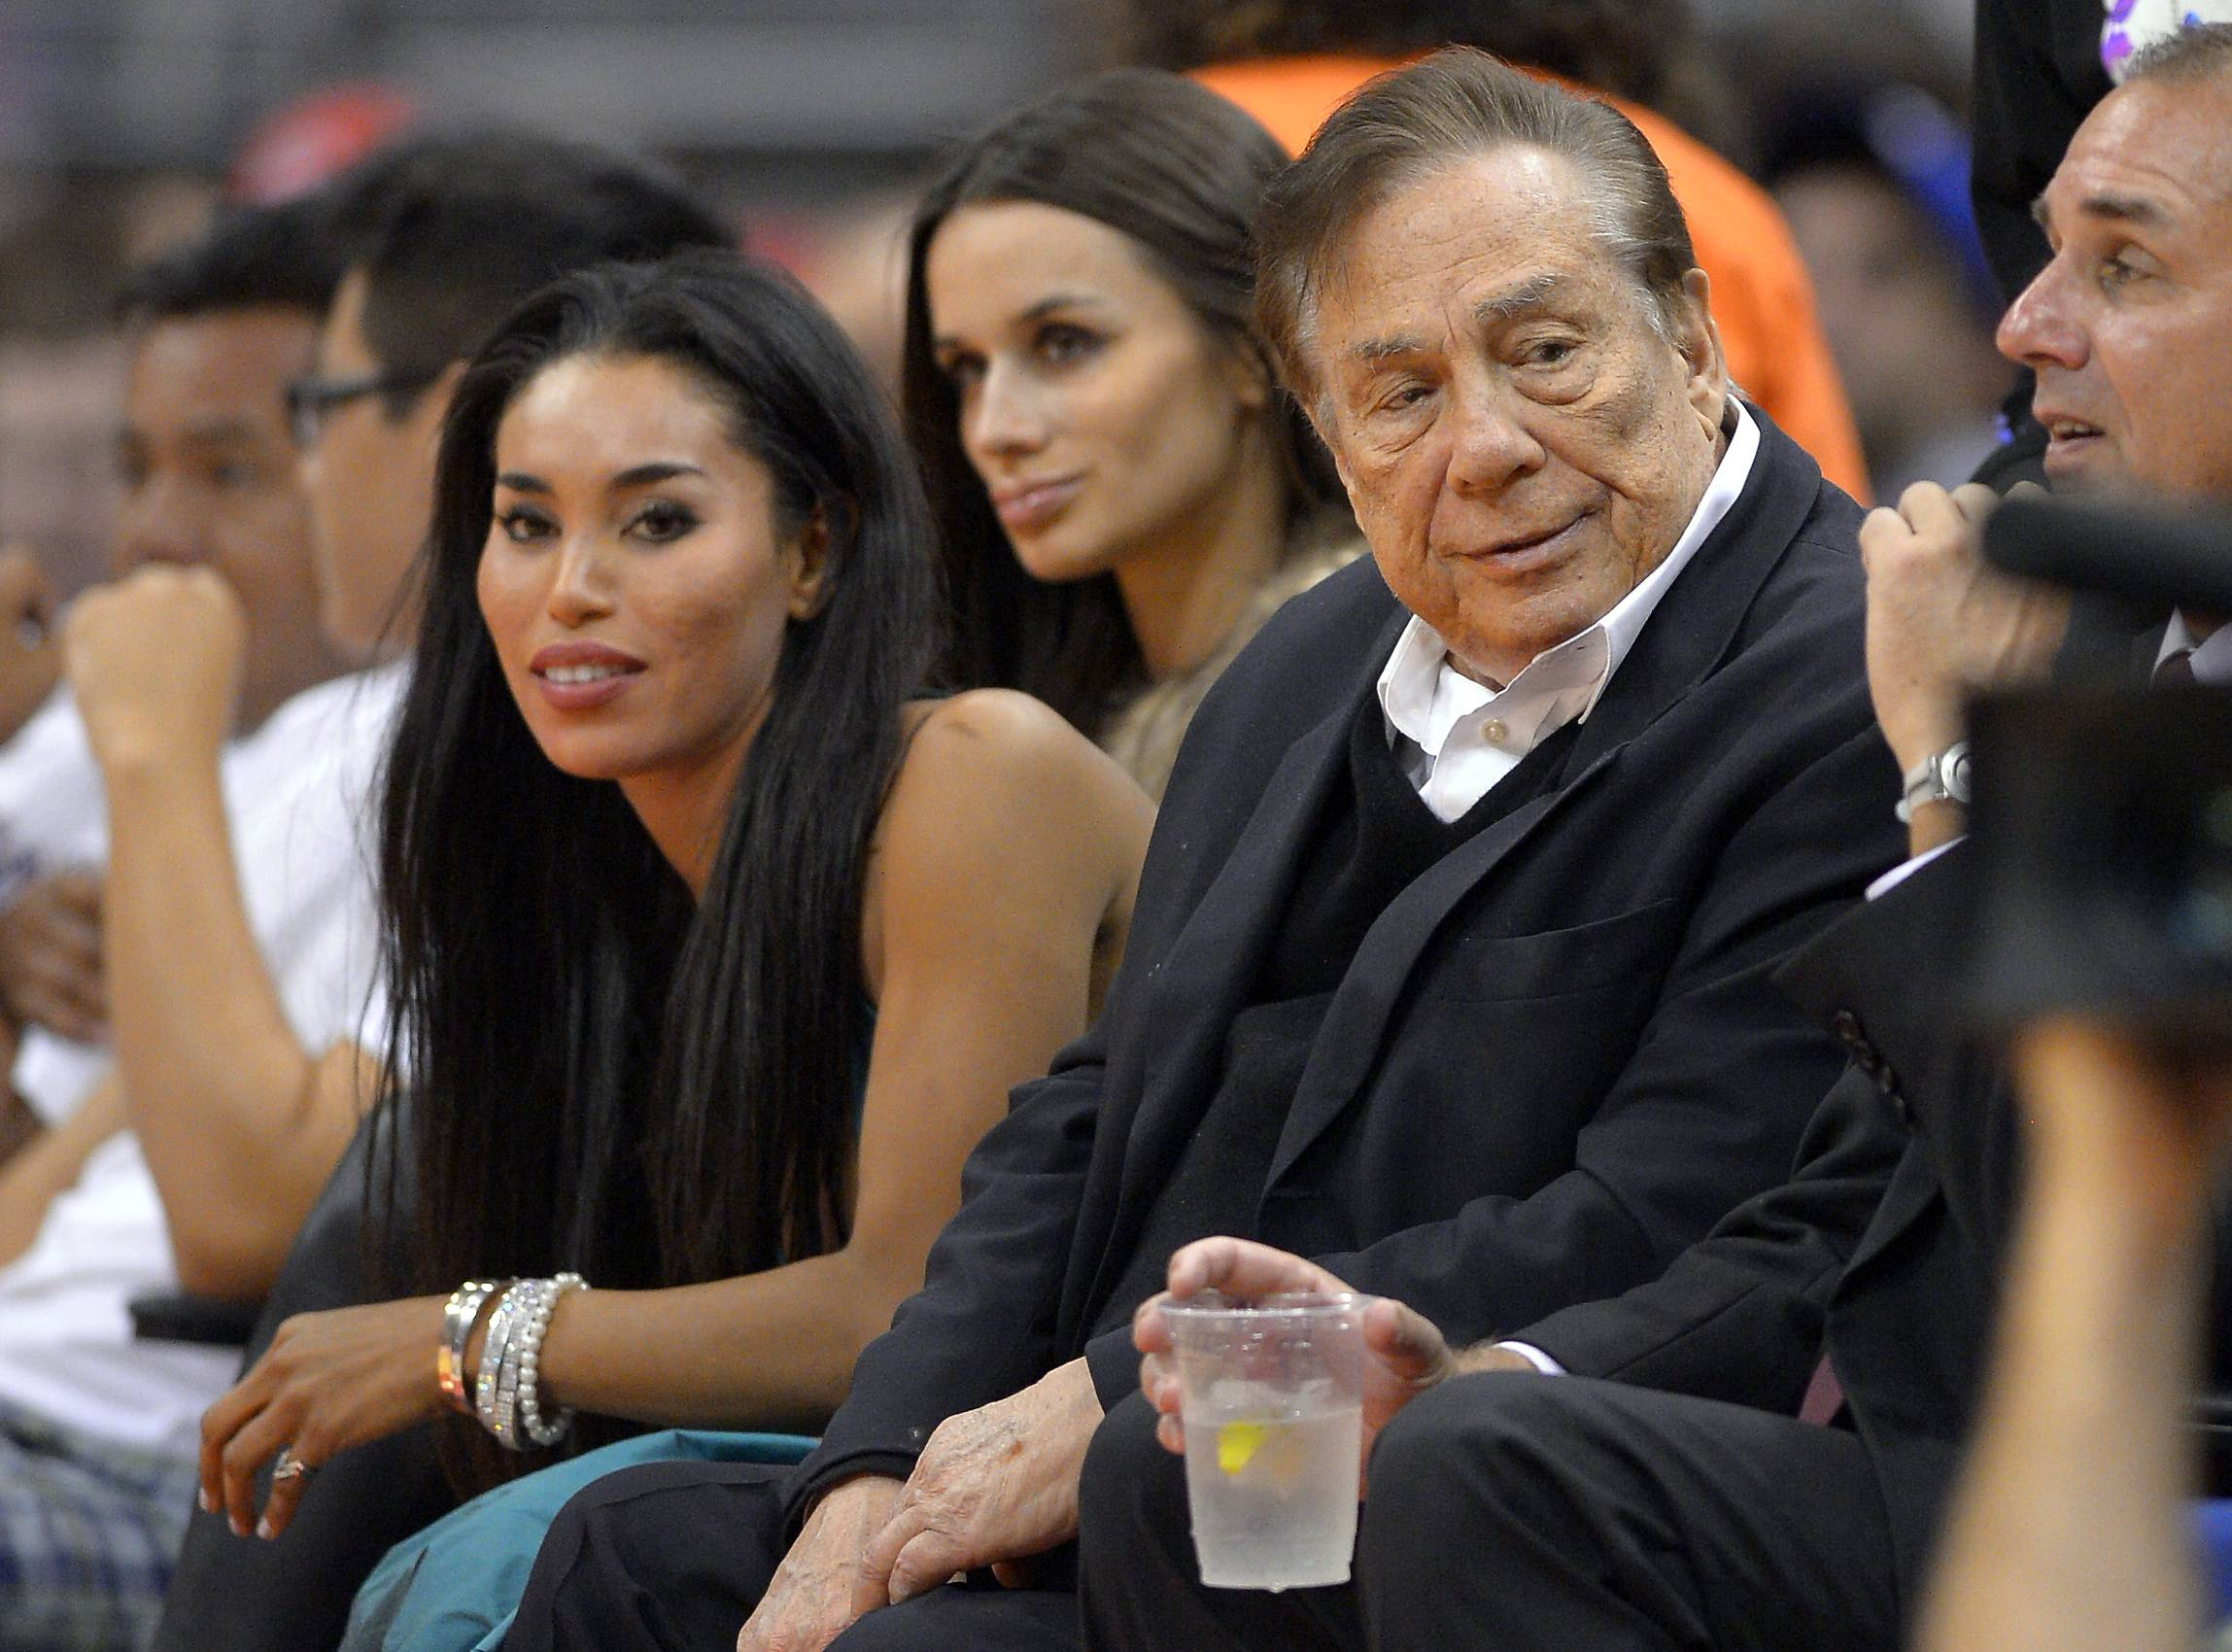 Sponsors flee Clippers after racial remarks